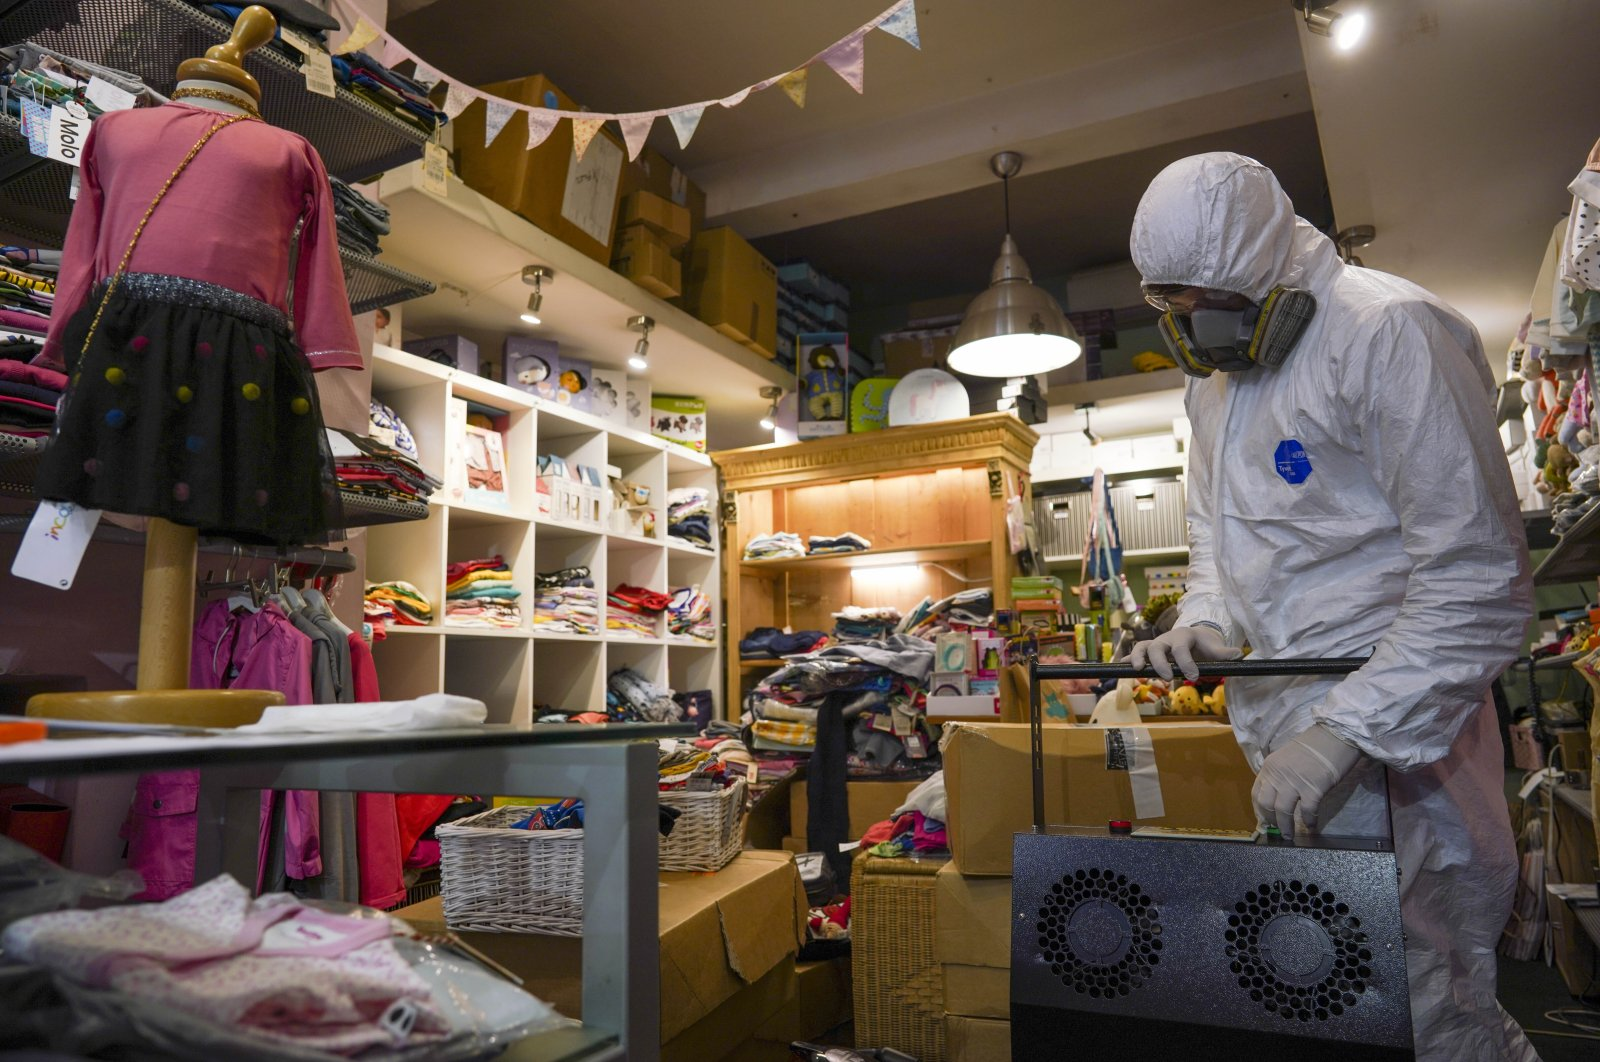 A man in protective gear prepares to sanitize a children's clothes shop before it opens to prevent the spread of COVID-19, in Rome, Italy, April 14, 2020. (AP Photo)